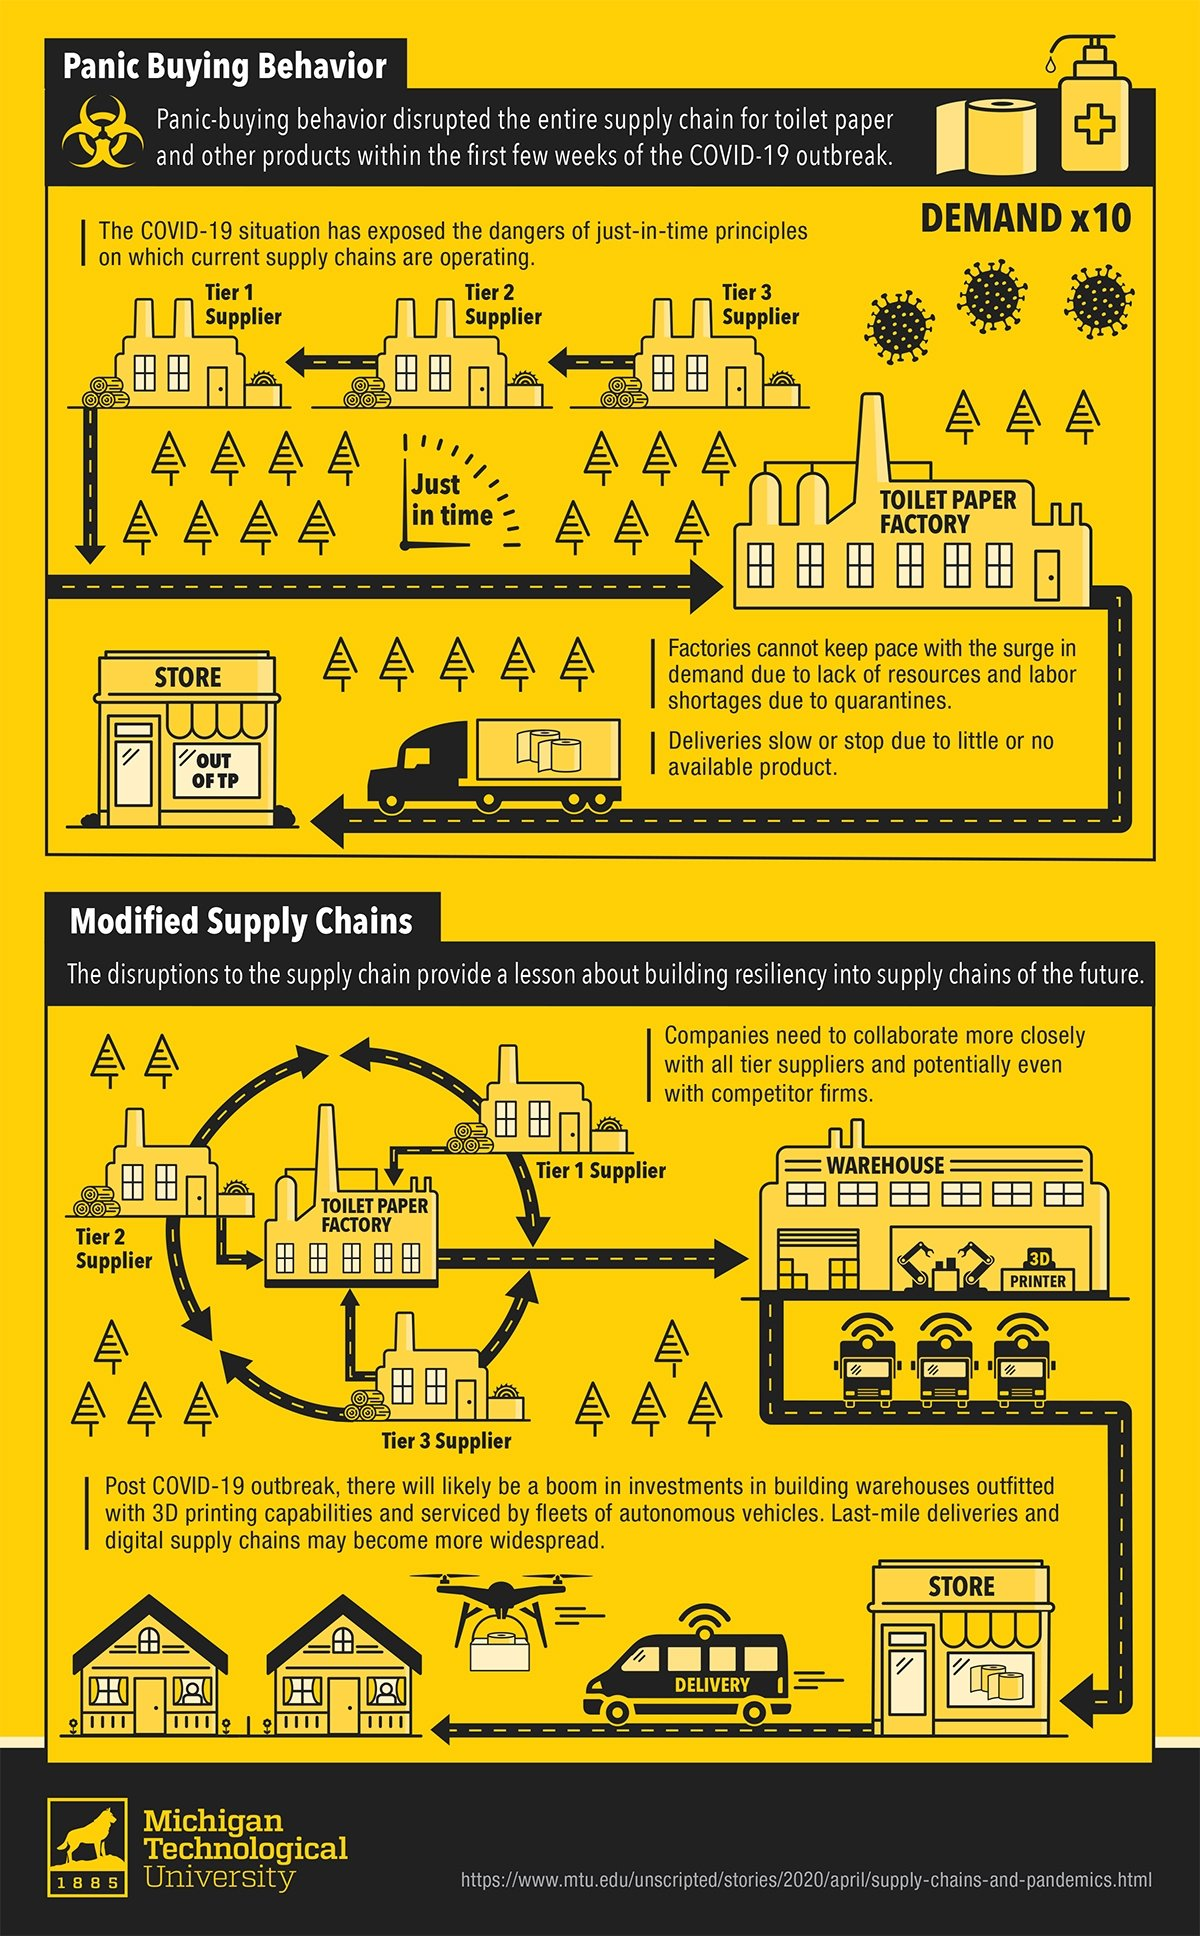 A graphic describing how supply chains must evolve to become more resilient.